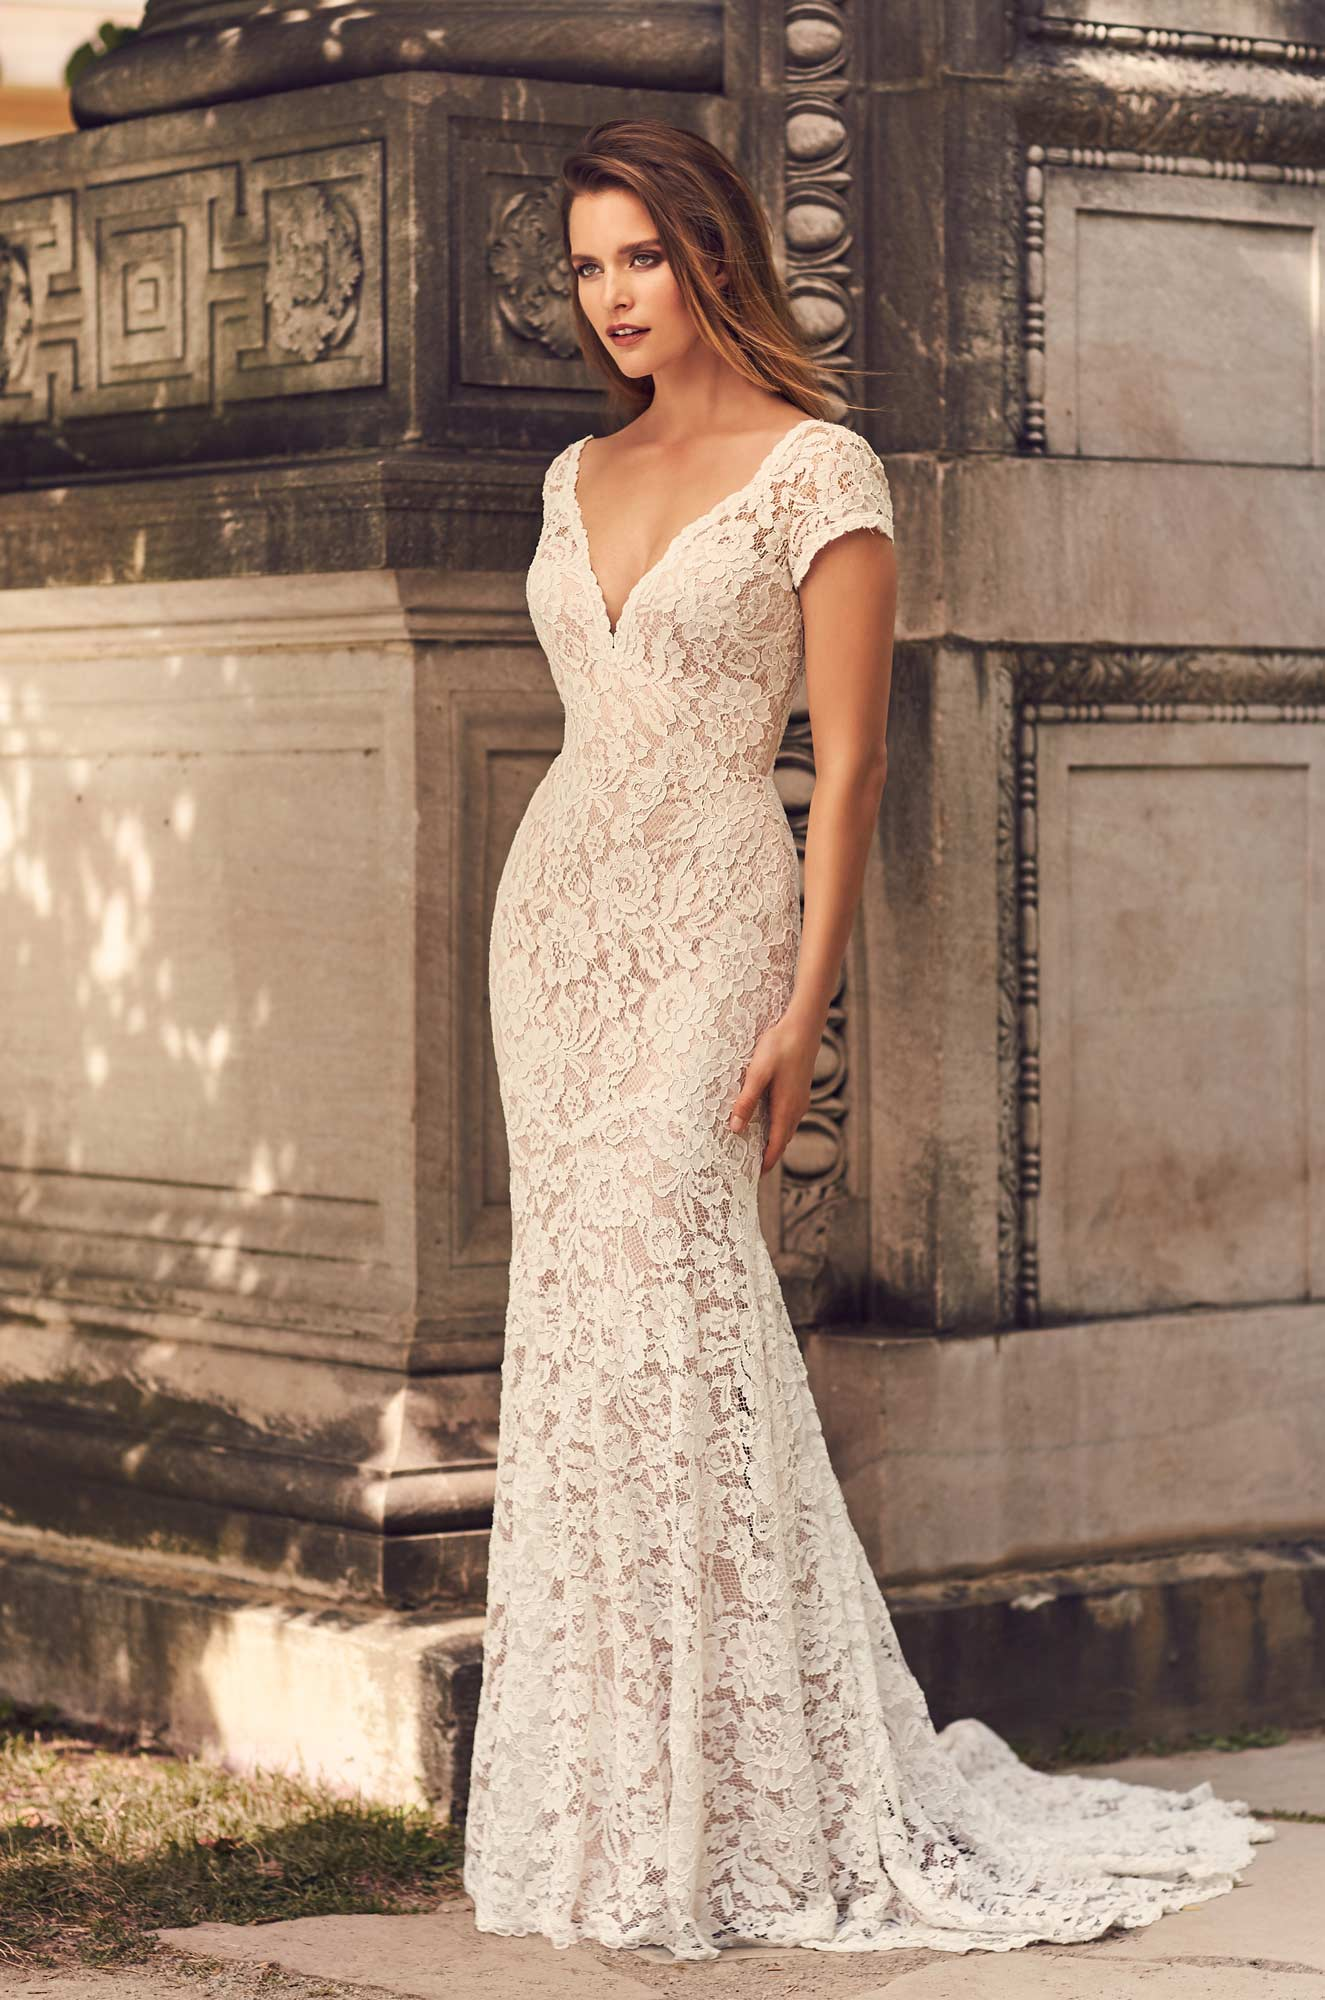 Short Sleeve V-Neckline Wedding Dress – Style #2233 | Mikaella Bridal